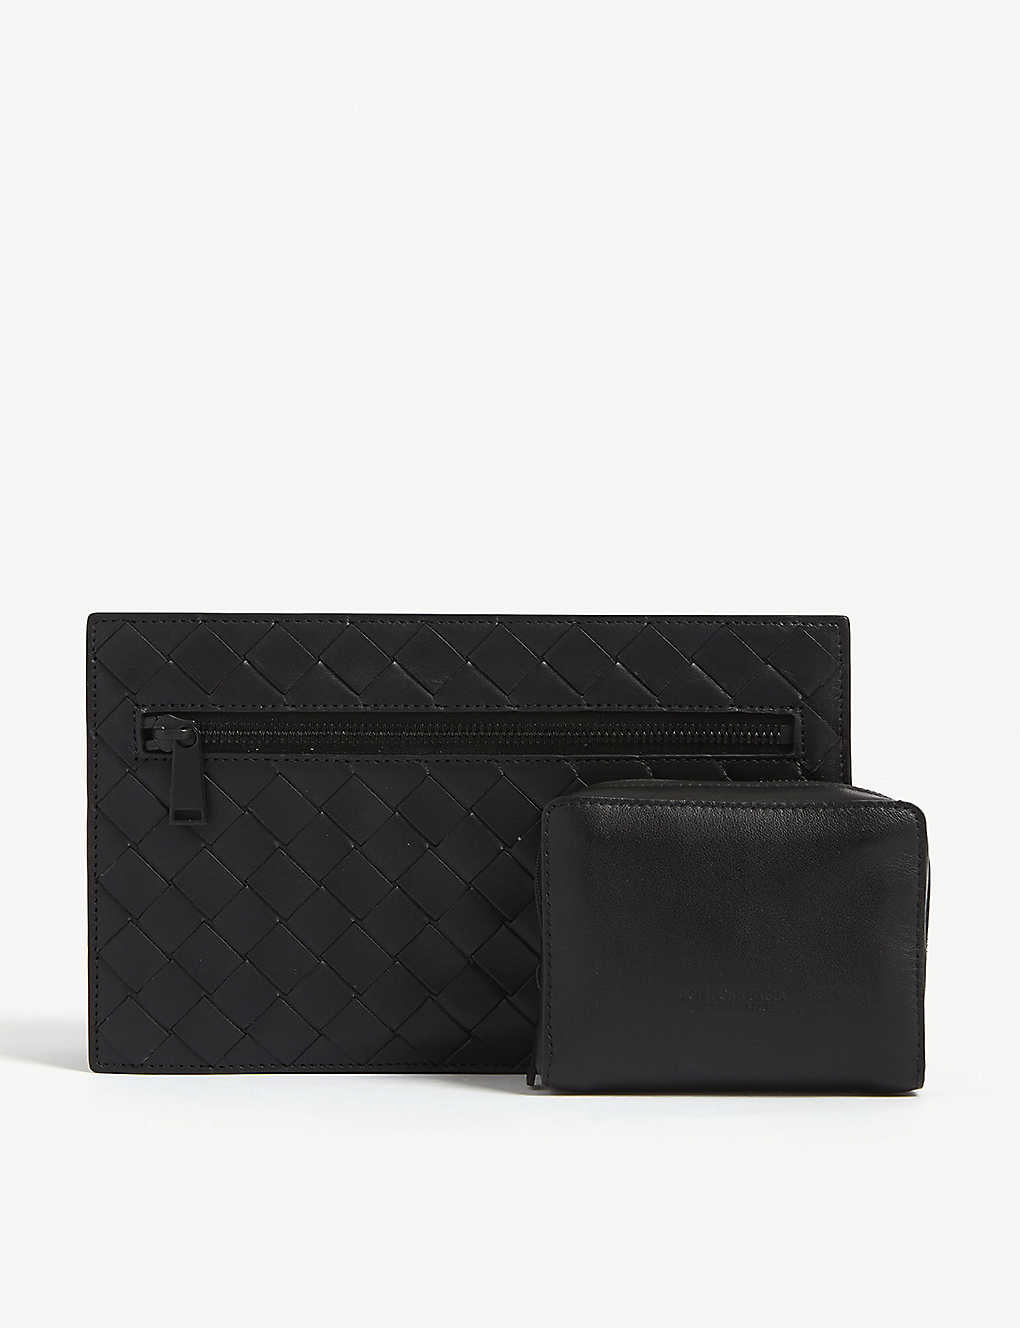 BOTTEGA VENETA: Intrecciato weave leather travel case